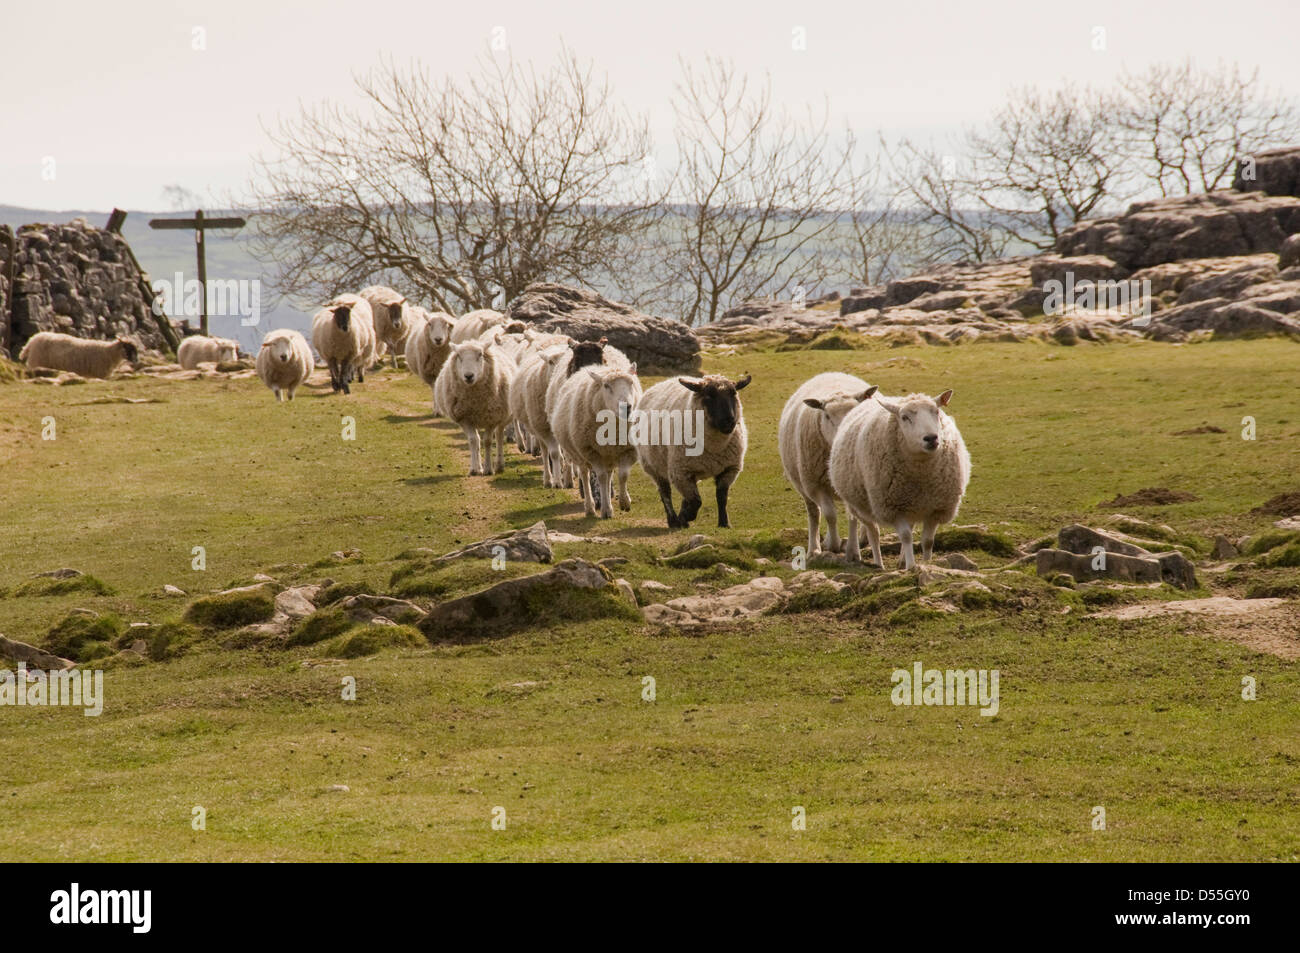 Flock of sheep in long line following one after the other, walking on rocky limestone terrain (amusing) - Malham Stock Photo